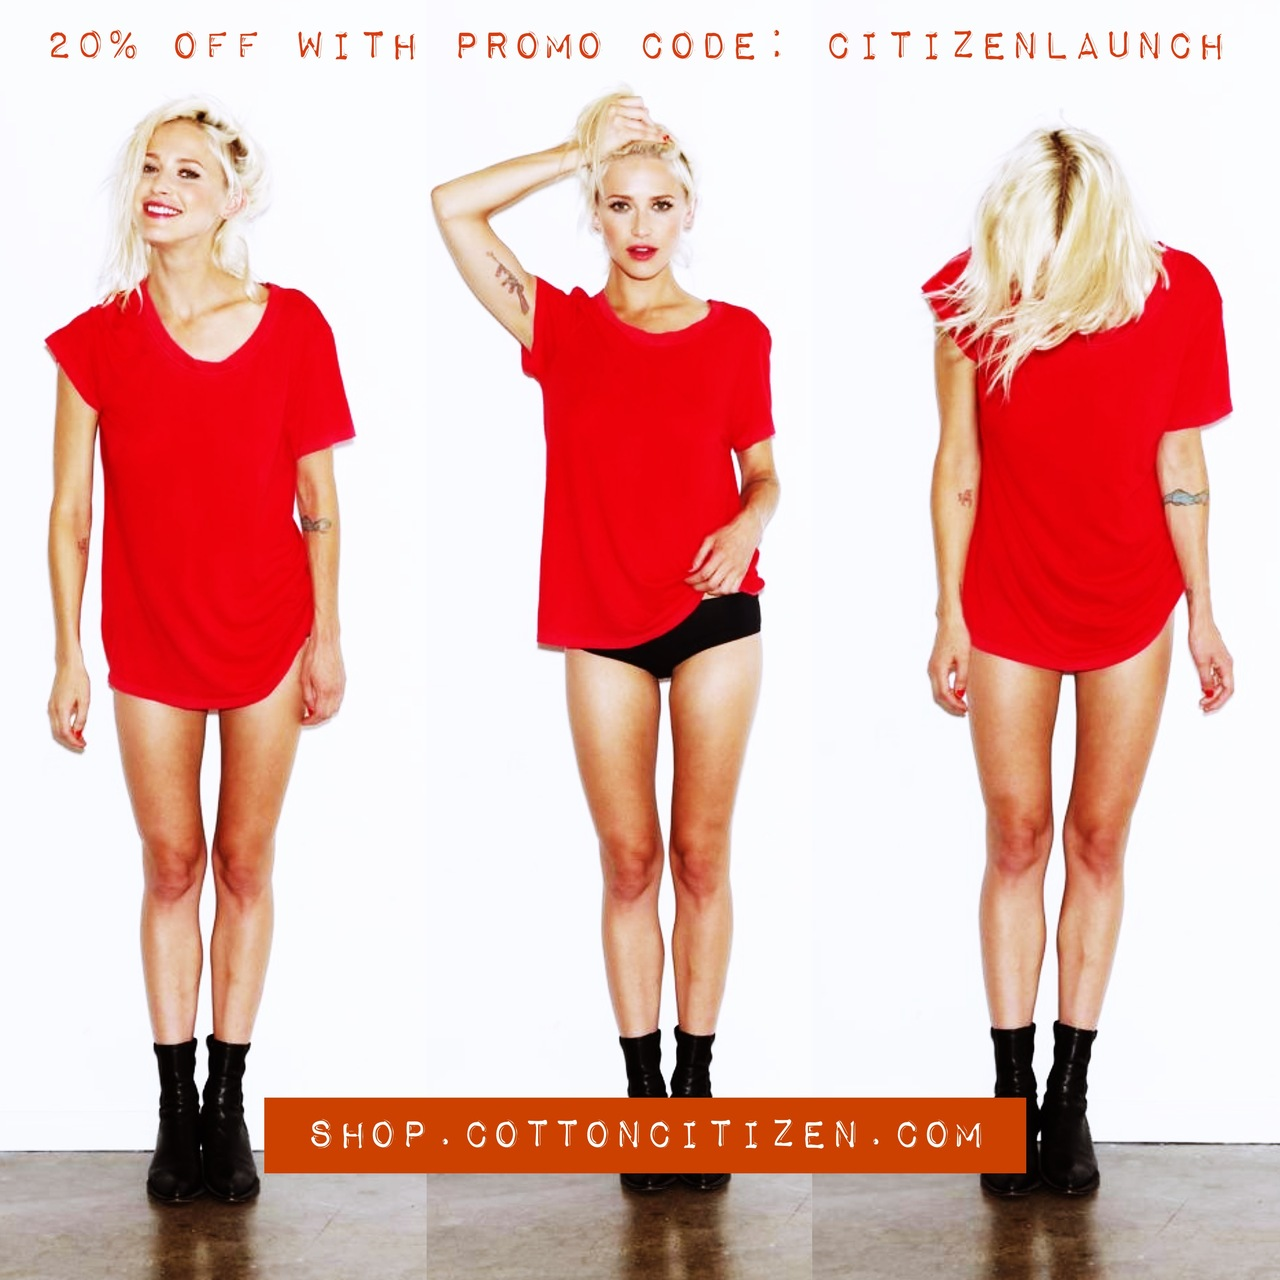 RICH THING: Cotton Citizen's  Tee Shop  has just launched.   Get 20% off w/ Citizen Code: citizenlaunch   u r welcome.